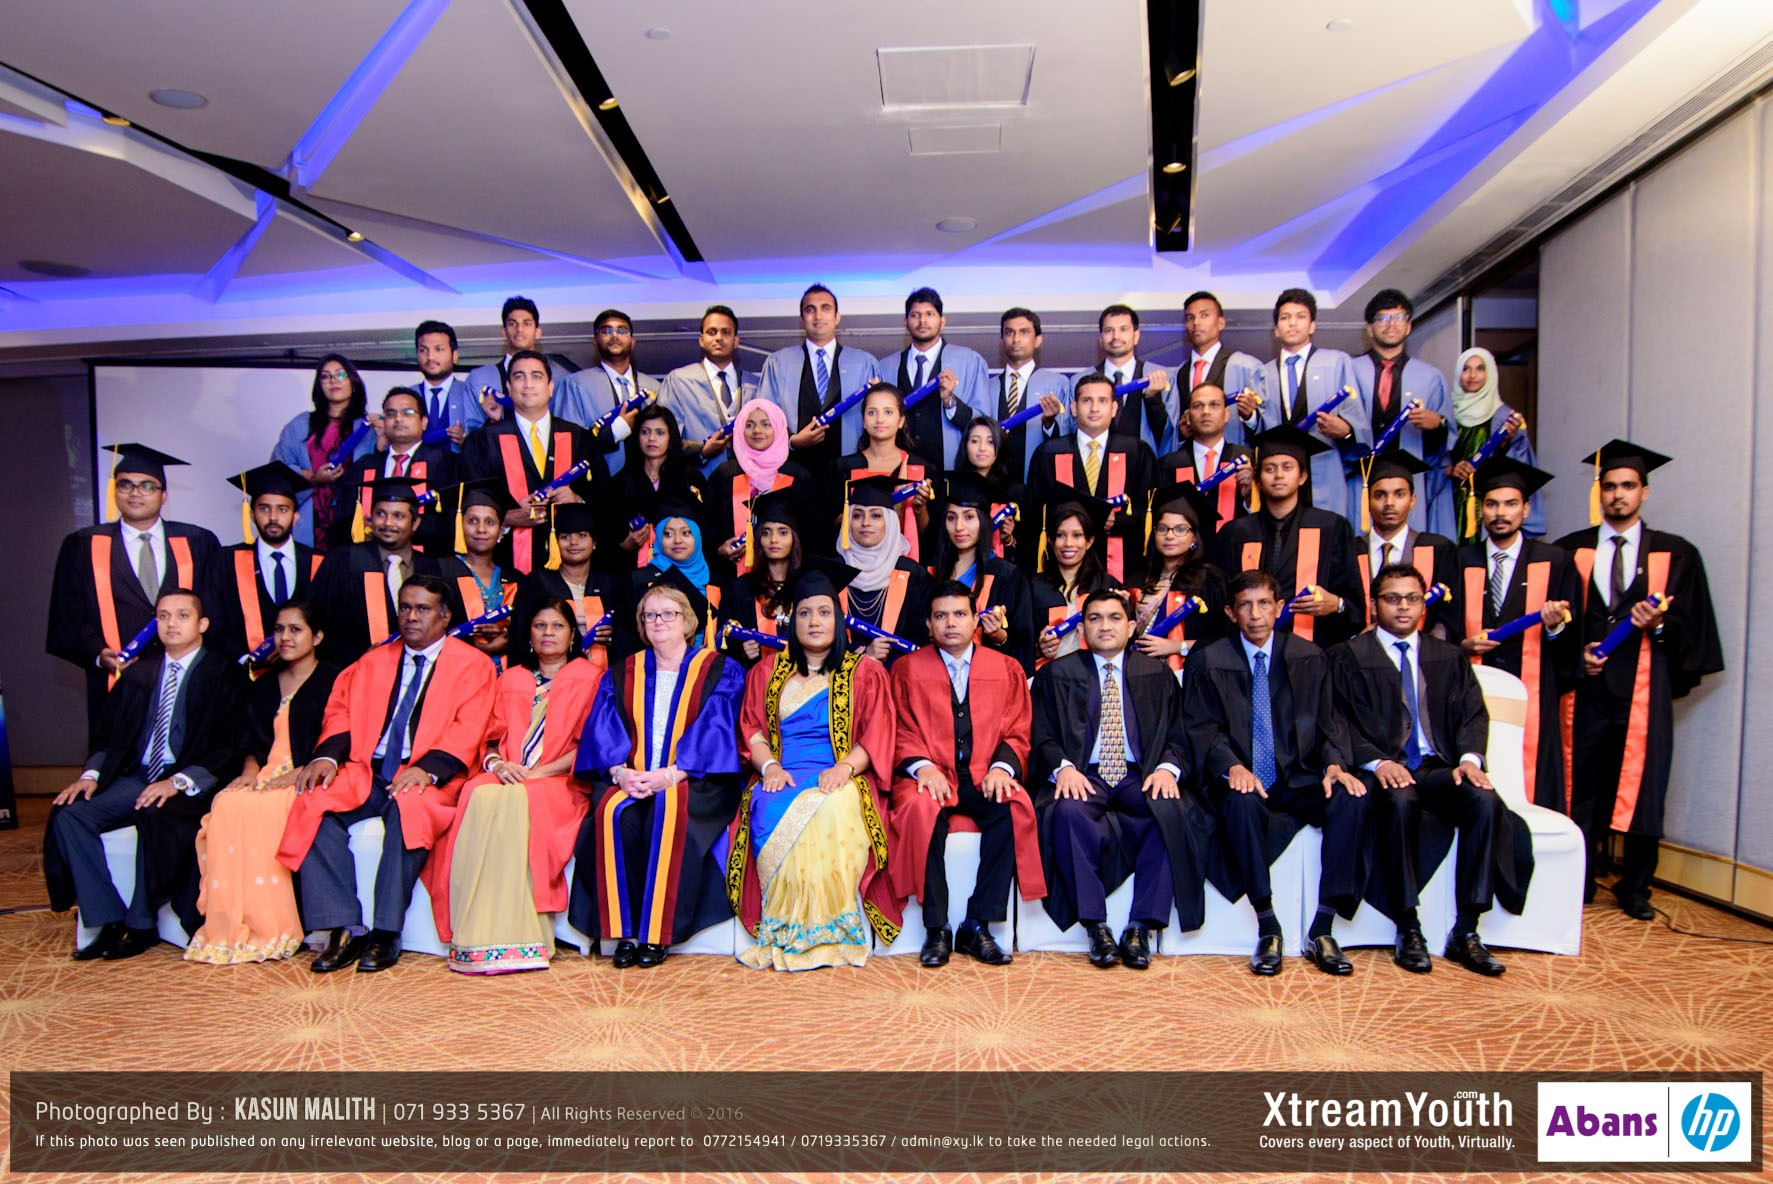 event-thames-college-graduation-ceremony